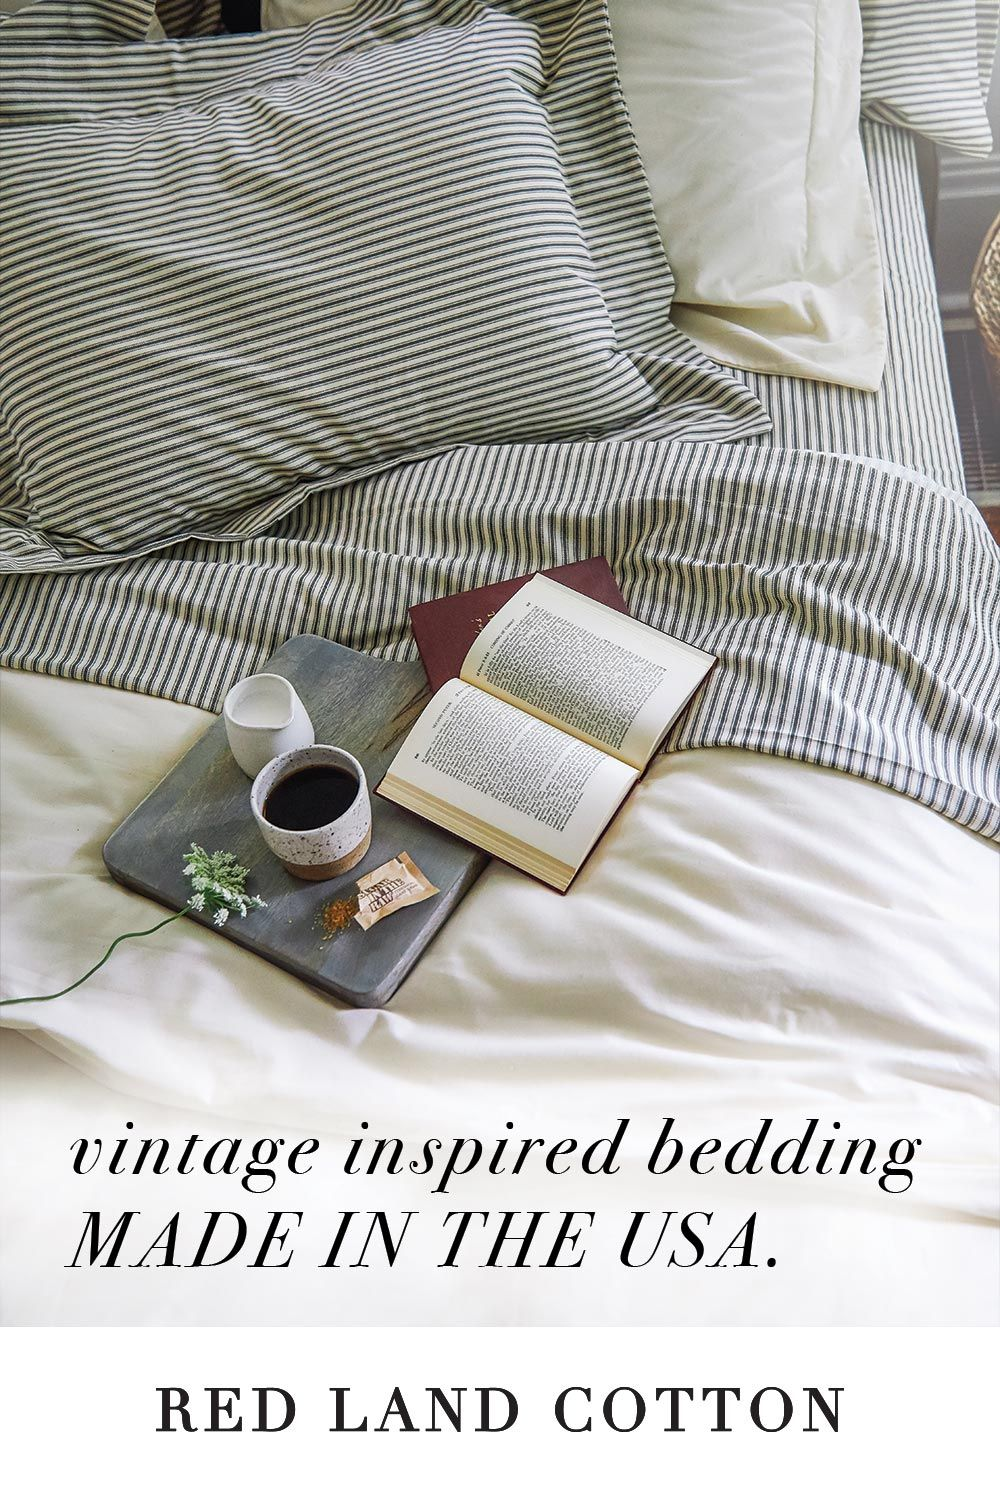 Red Land Cotton Creates Vintage Inspired Bedding Exclusively From